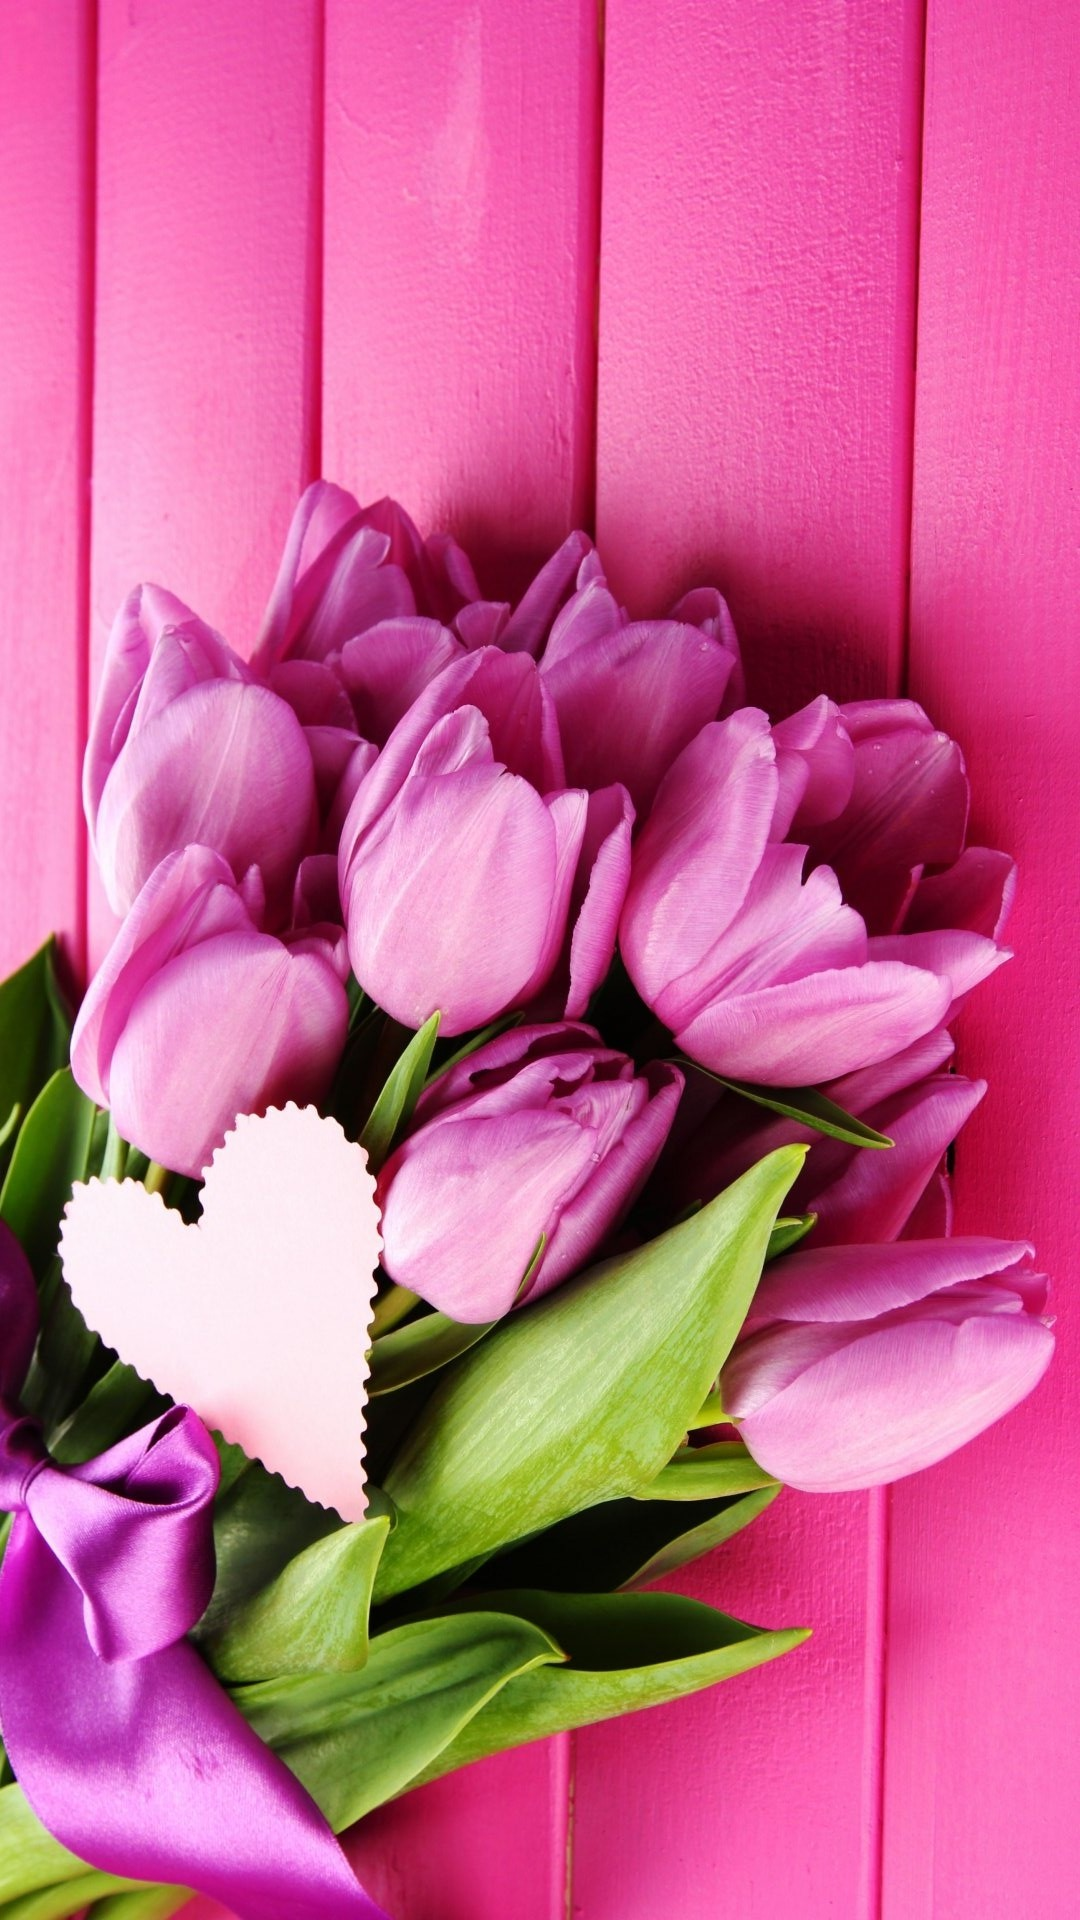 4K Bouquet Tulips Wallpaper For Mobile